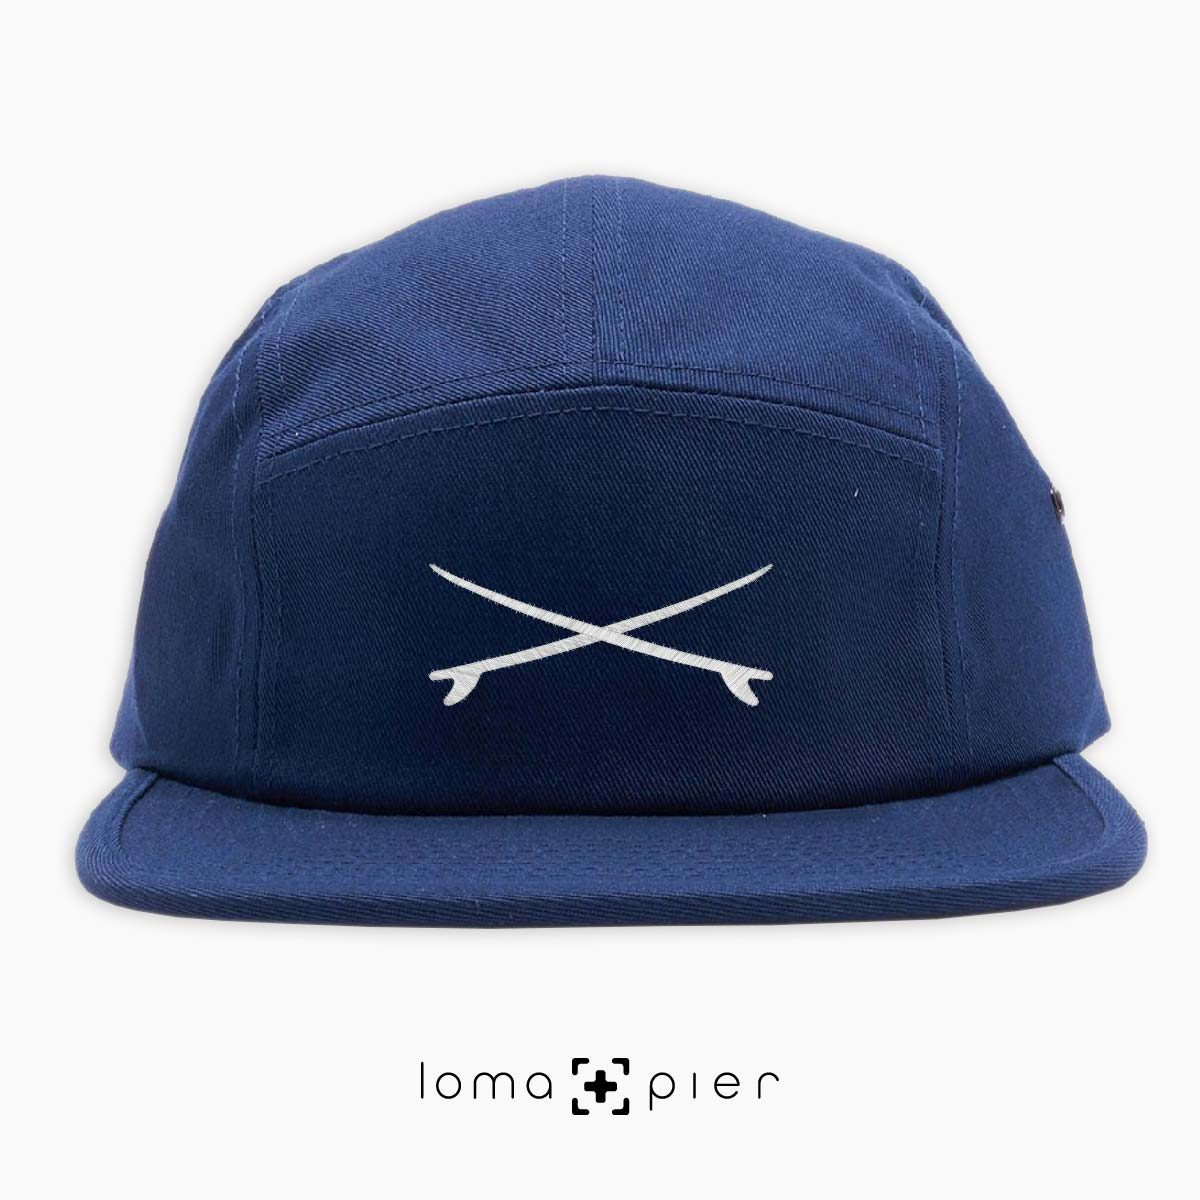 X MARKS THE SPOT icon embroidered on a navy blue cotton 5-panel hat by loma+pier hat store